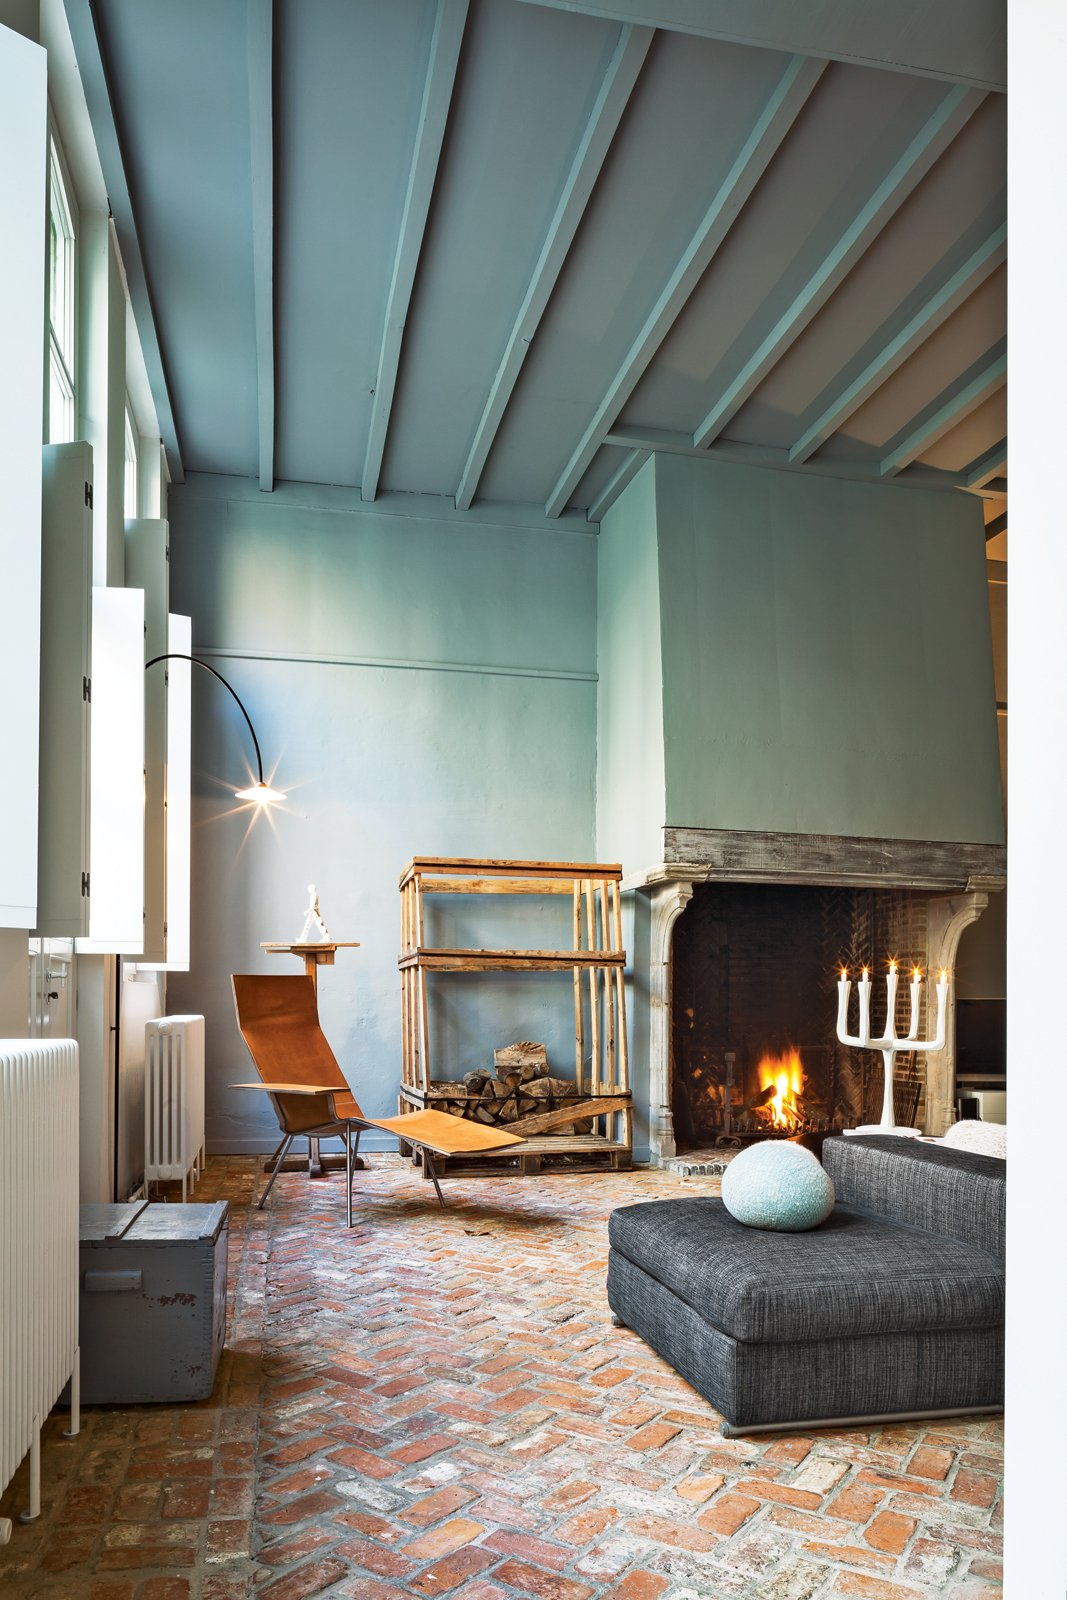 Living Room, Sofa, Chair, and Brick Floor Wenes incorporated artful furnishings into the private spaces: In the living room, a leather chair by Maarten Van Severen is beneath a lamp by his son, Hannes Van Severen, of design duo Muller Van Severen.  Photo 2 of 19 in This House Proves Art Galleries Can Be Super-Friendly